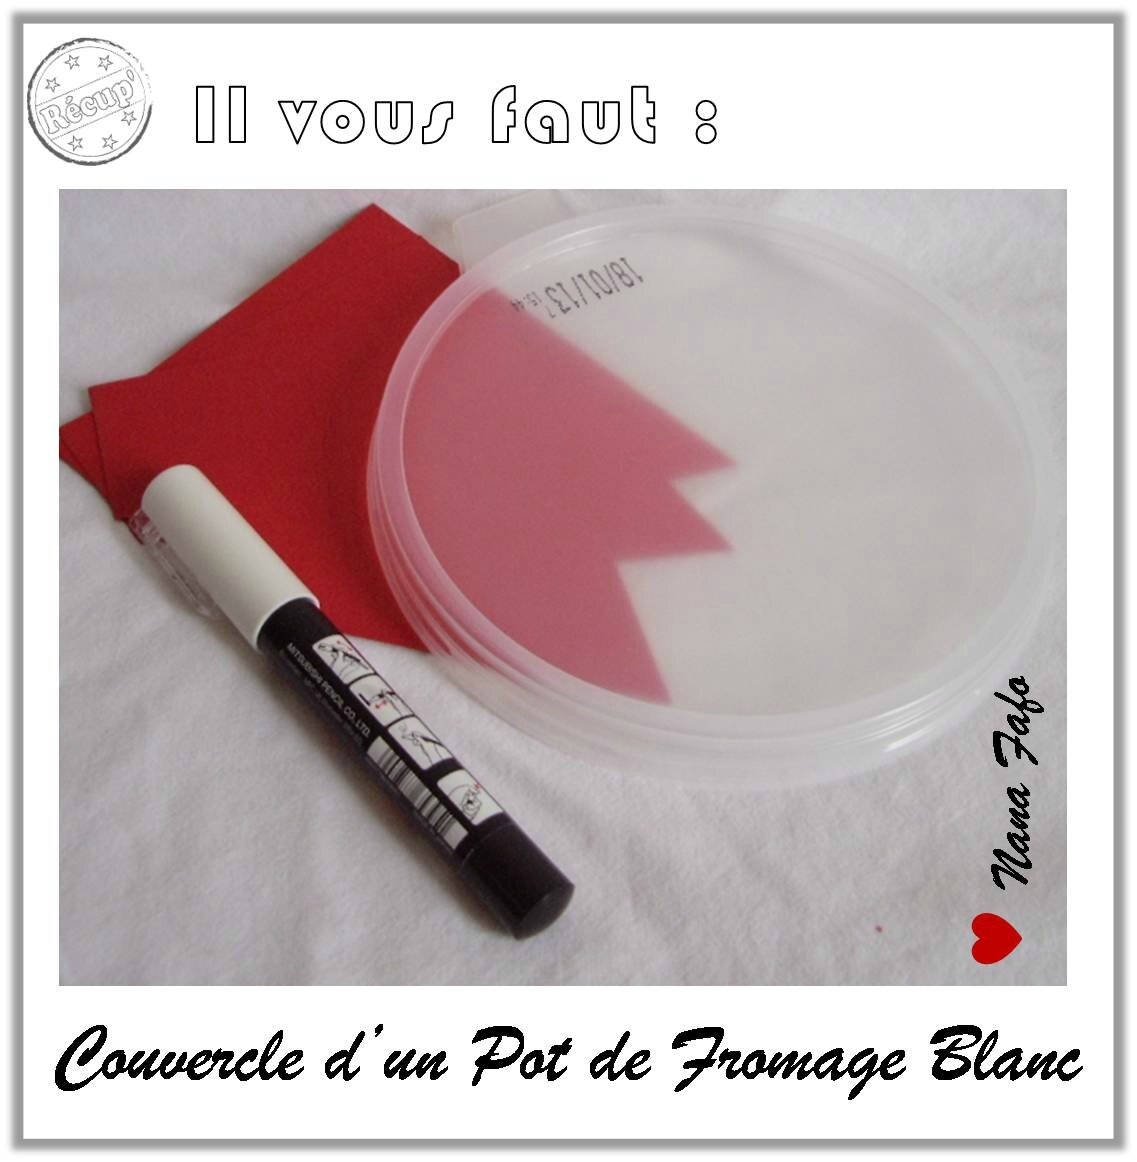 couvercle pot fromage blanc